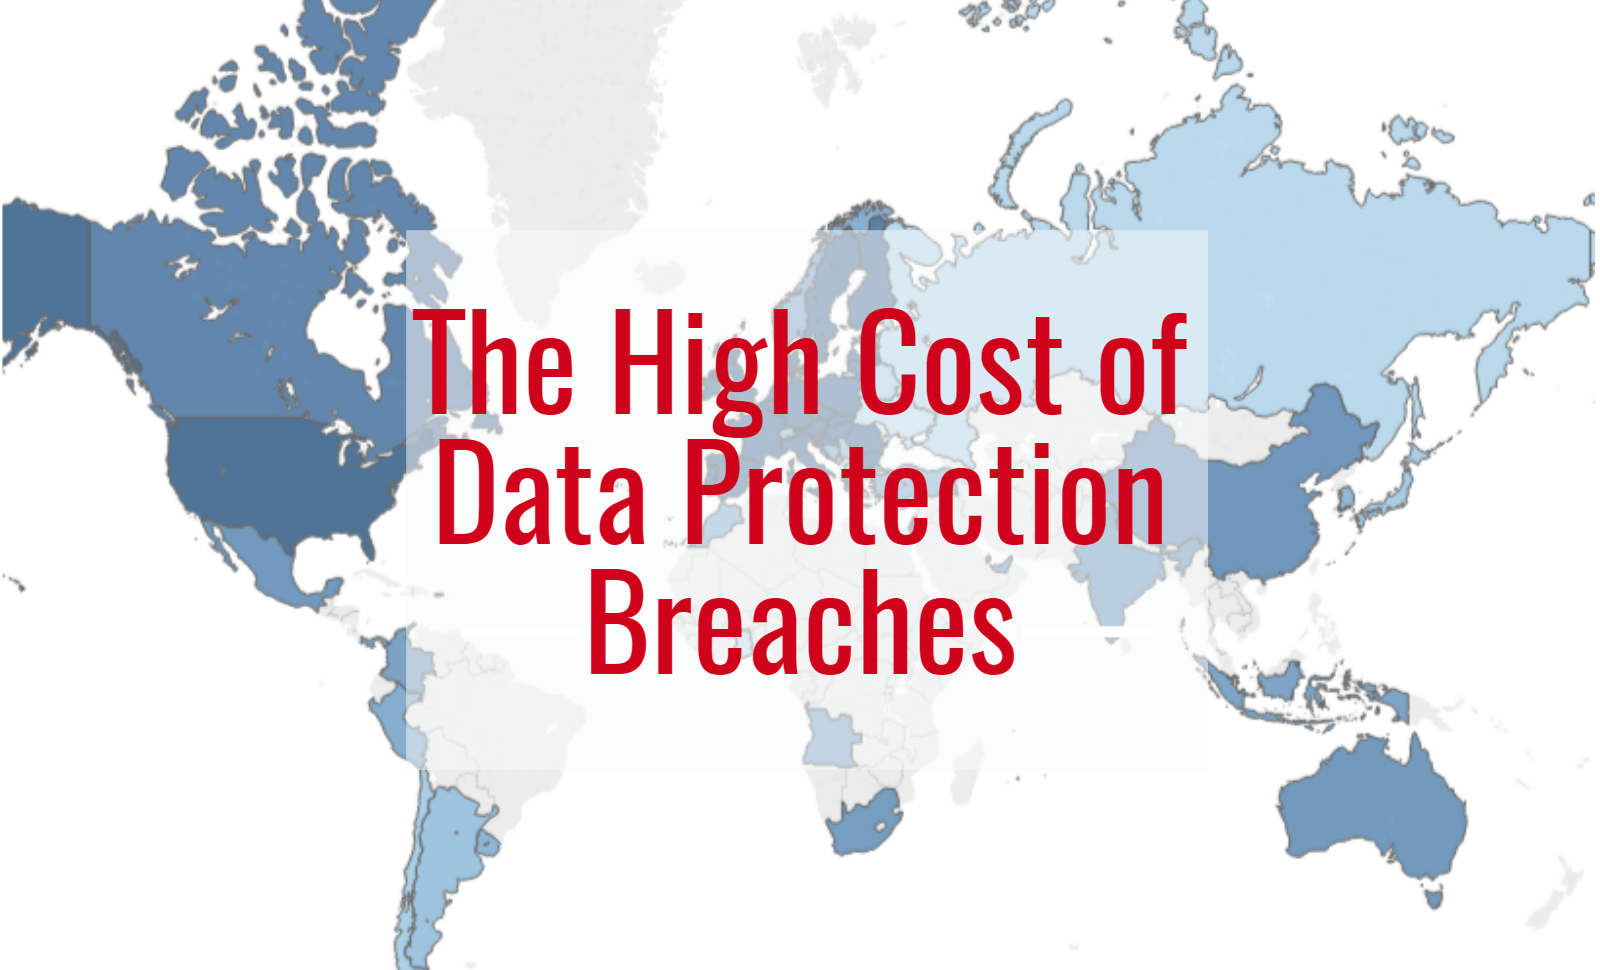 The High Cost of Data Protection Breaches